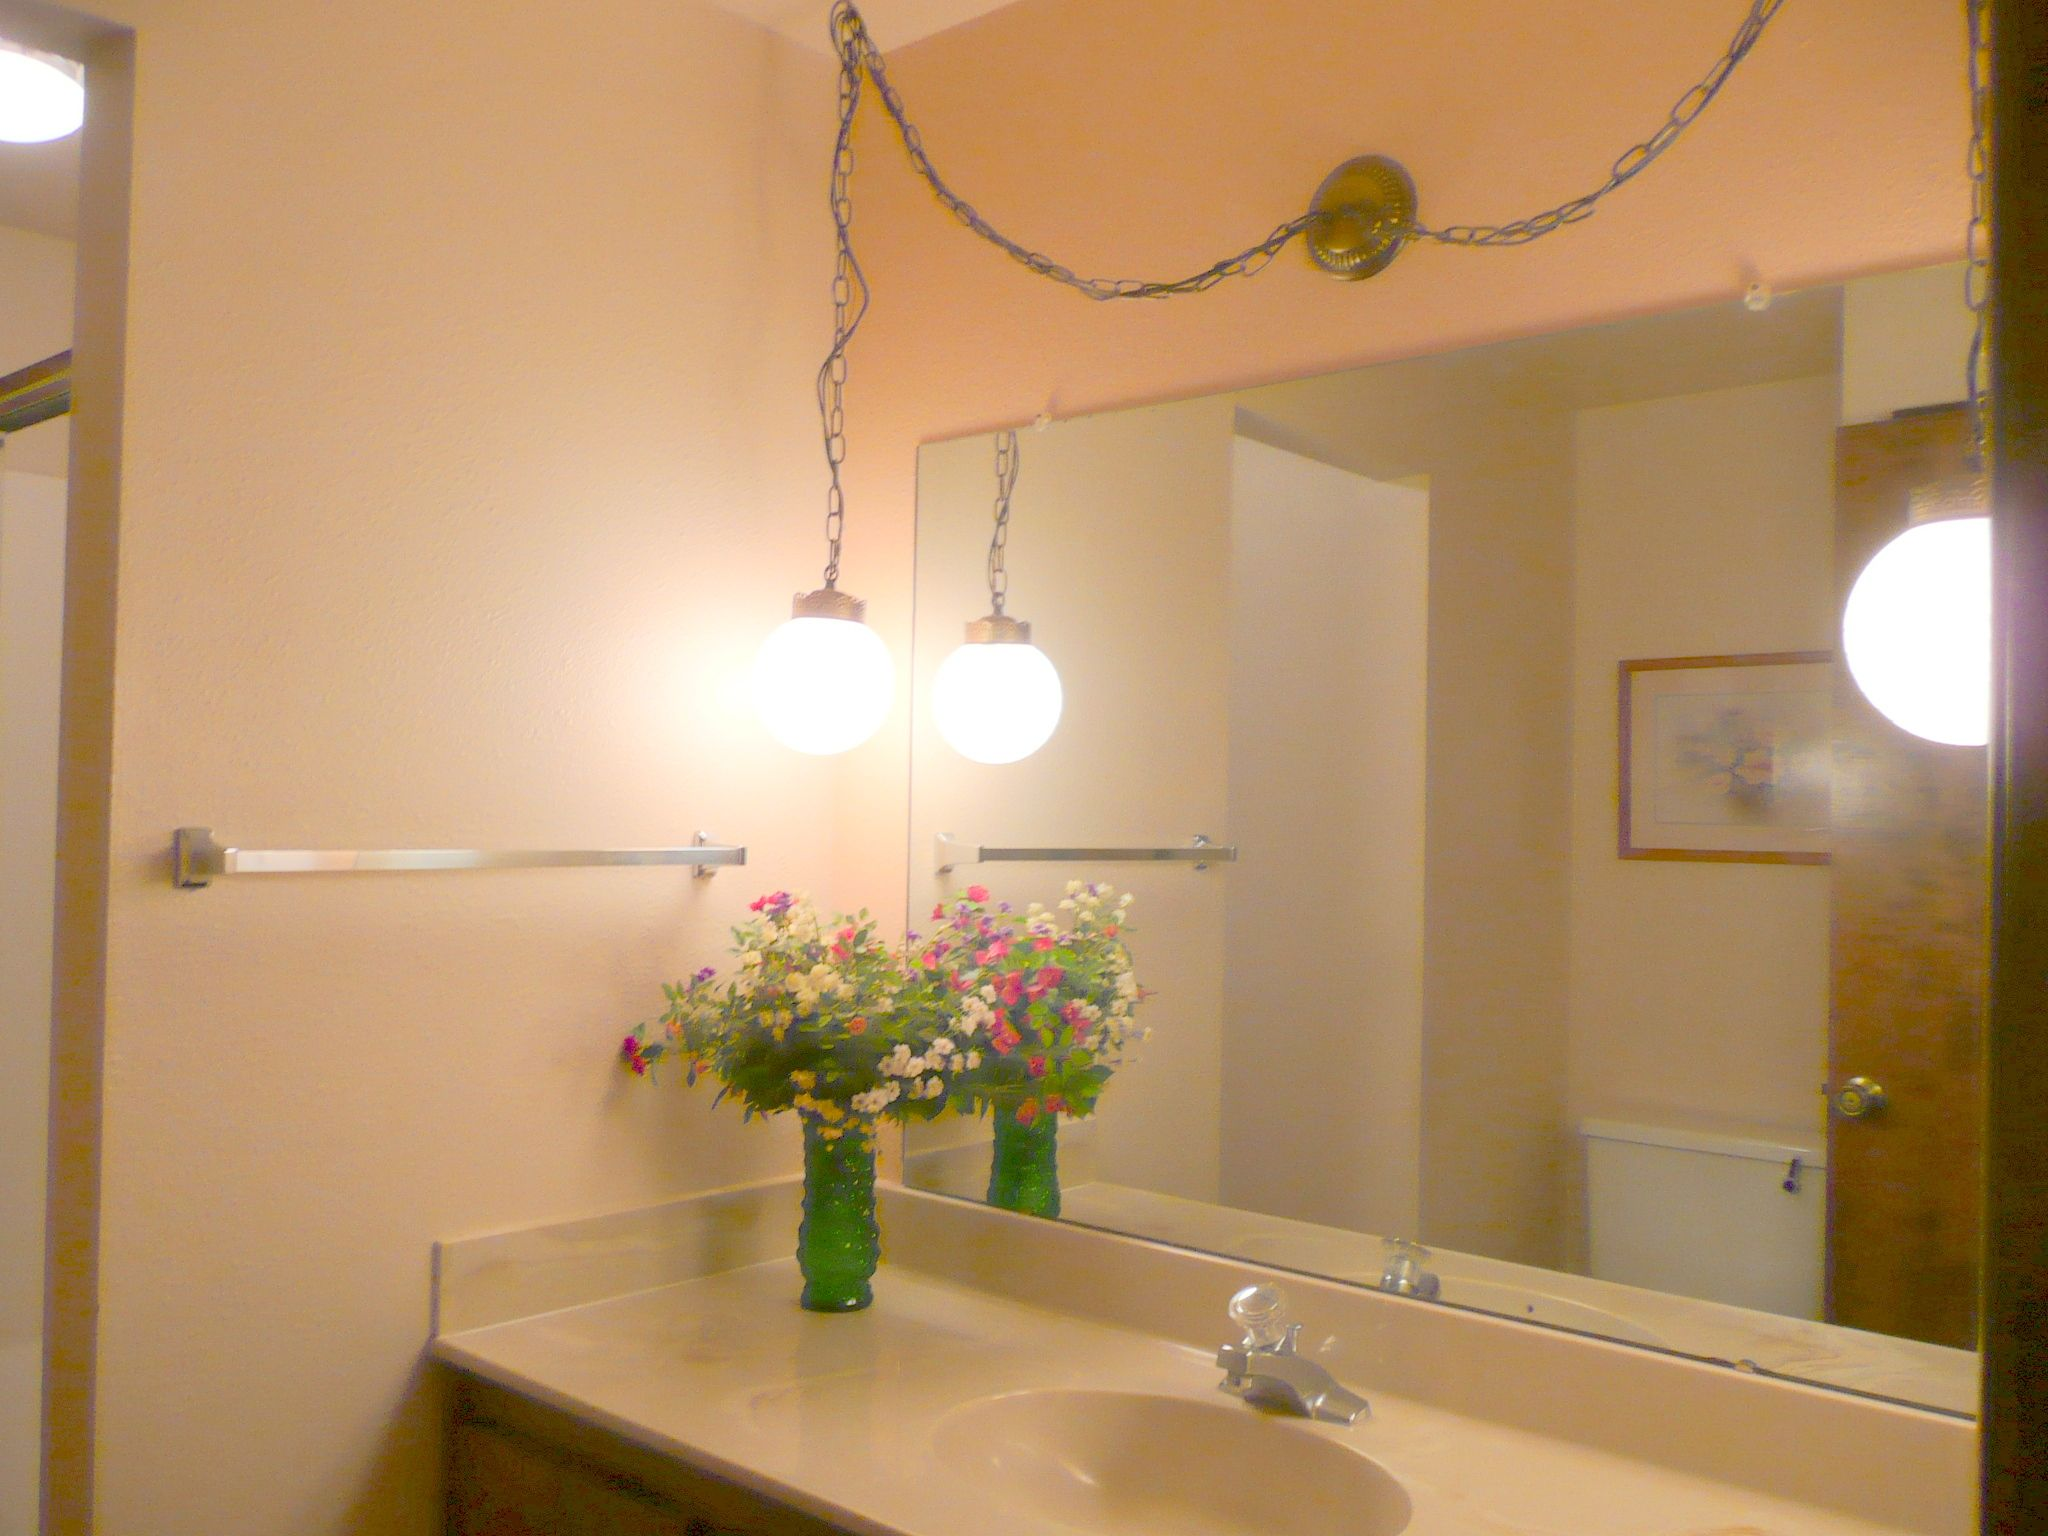 Superbe Updating Bathroom Vanity Lighting   Tips For Home Sellers   Home Staging :  Creative Concepts And